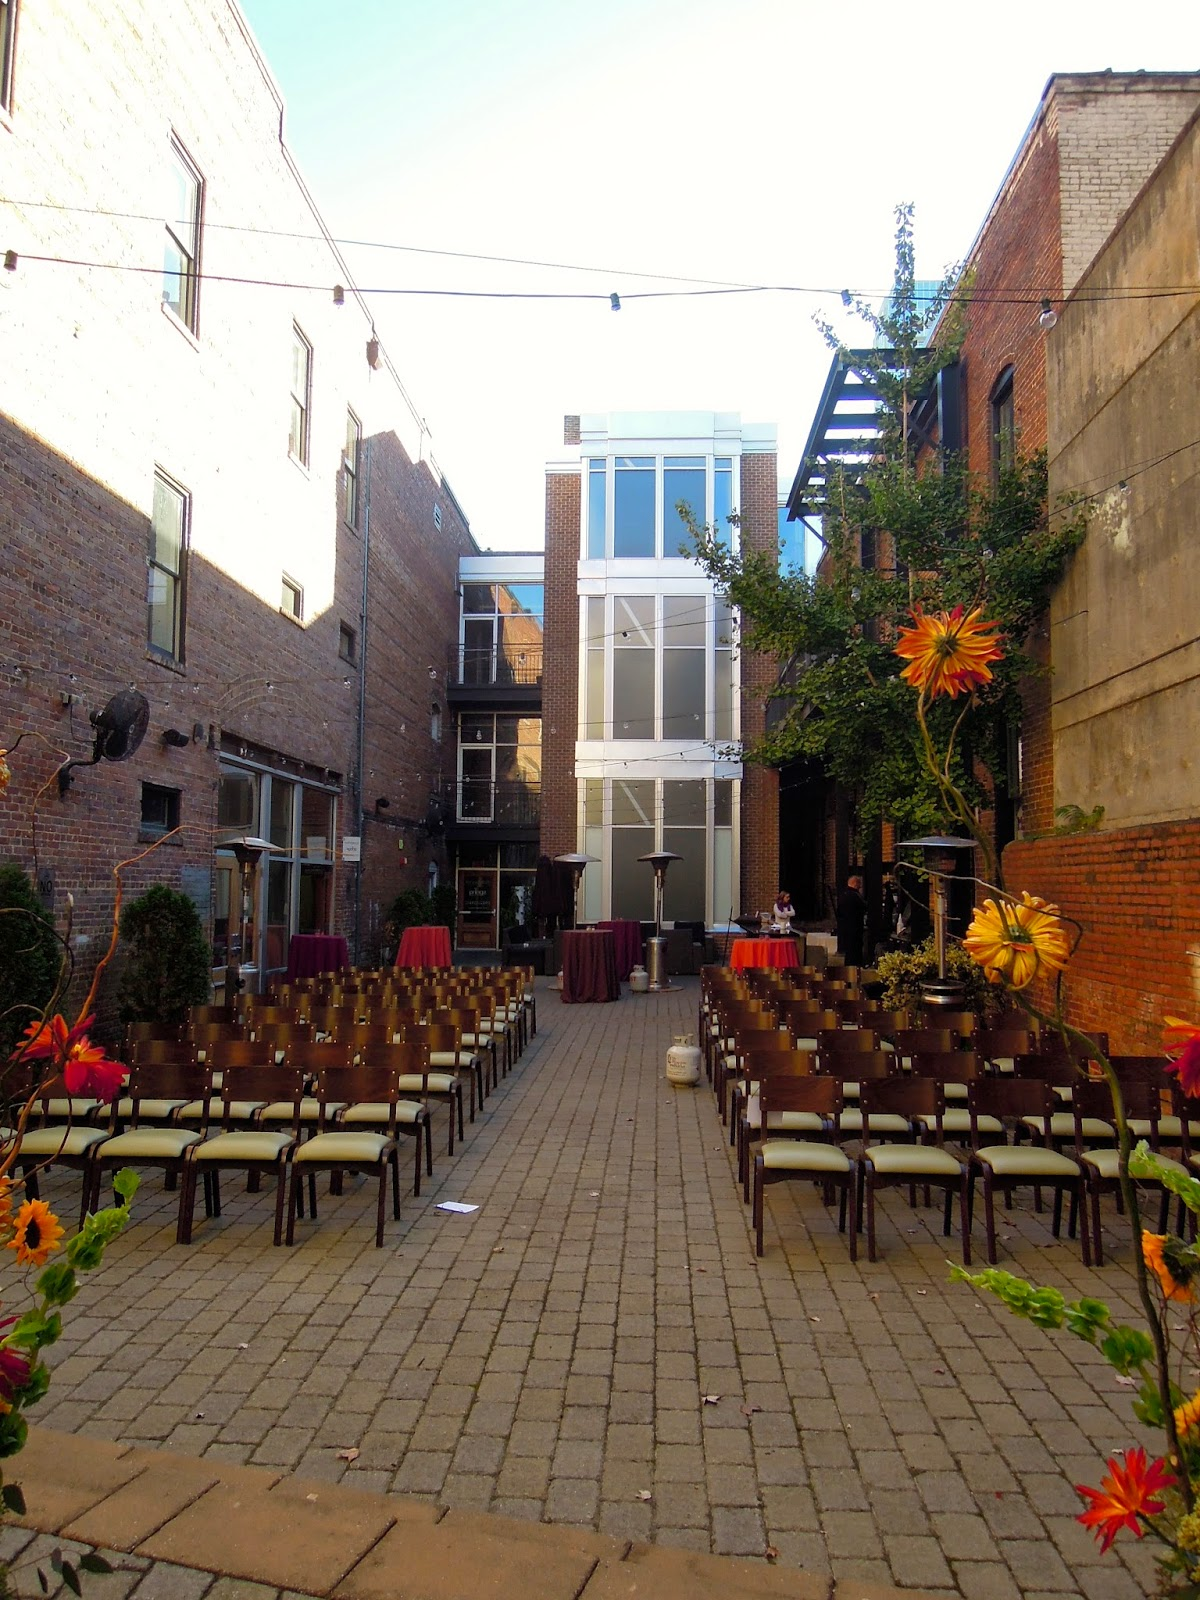 The View From Stage Area To Rear Of Courtyard Where Entrances Sitti And Gravy Are On Right